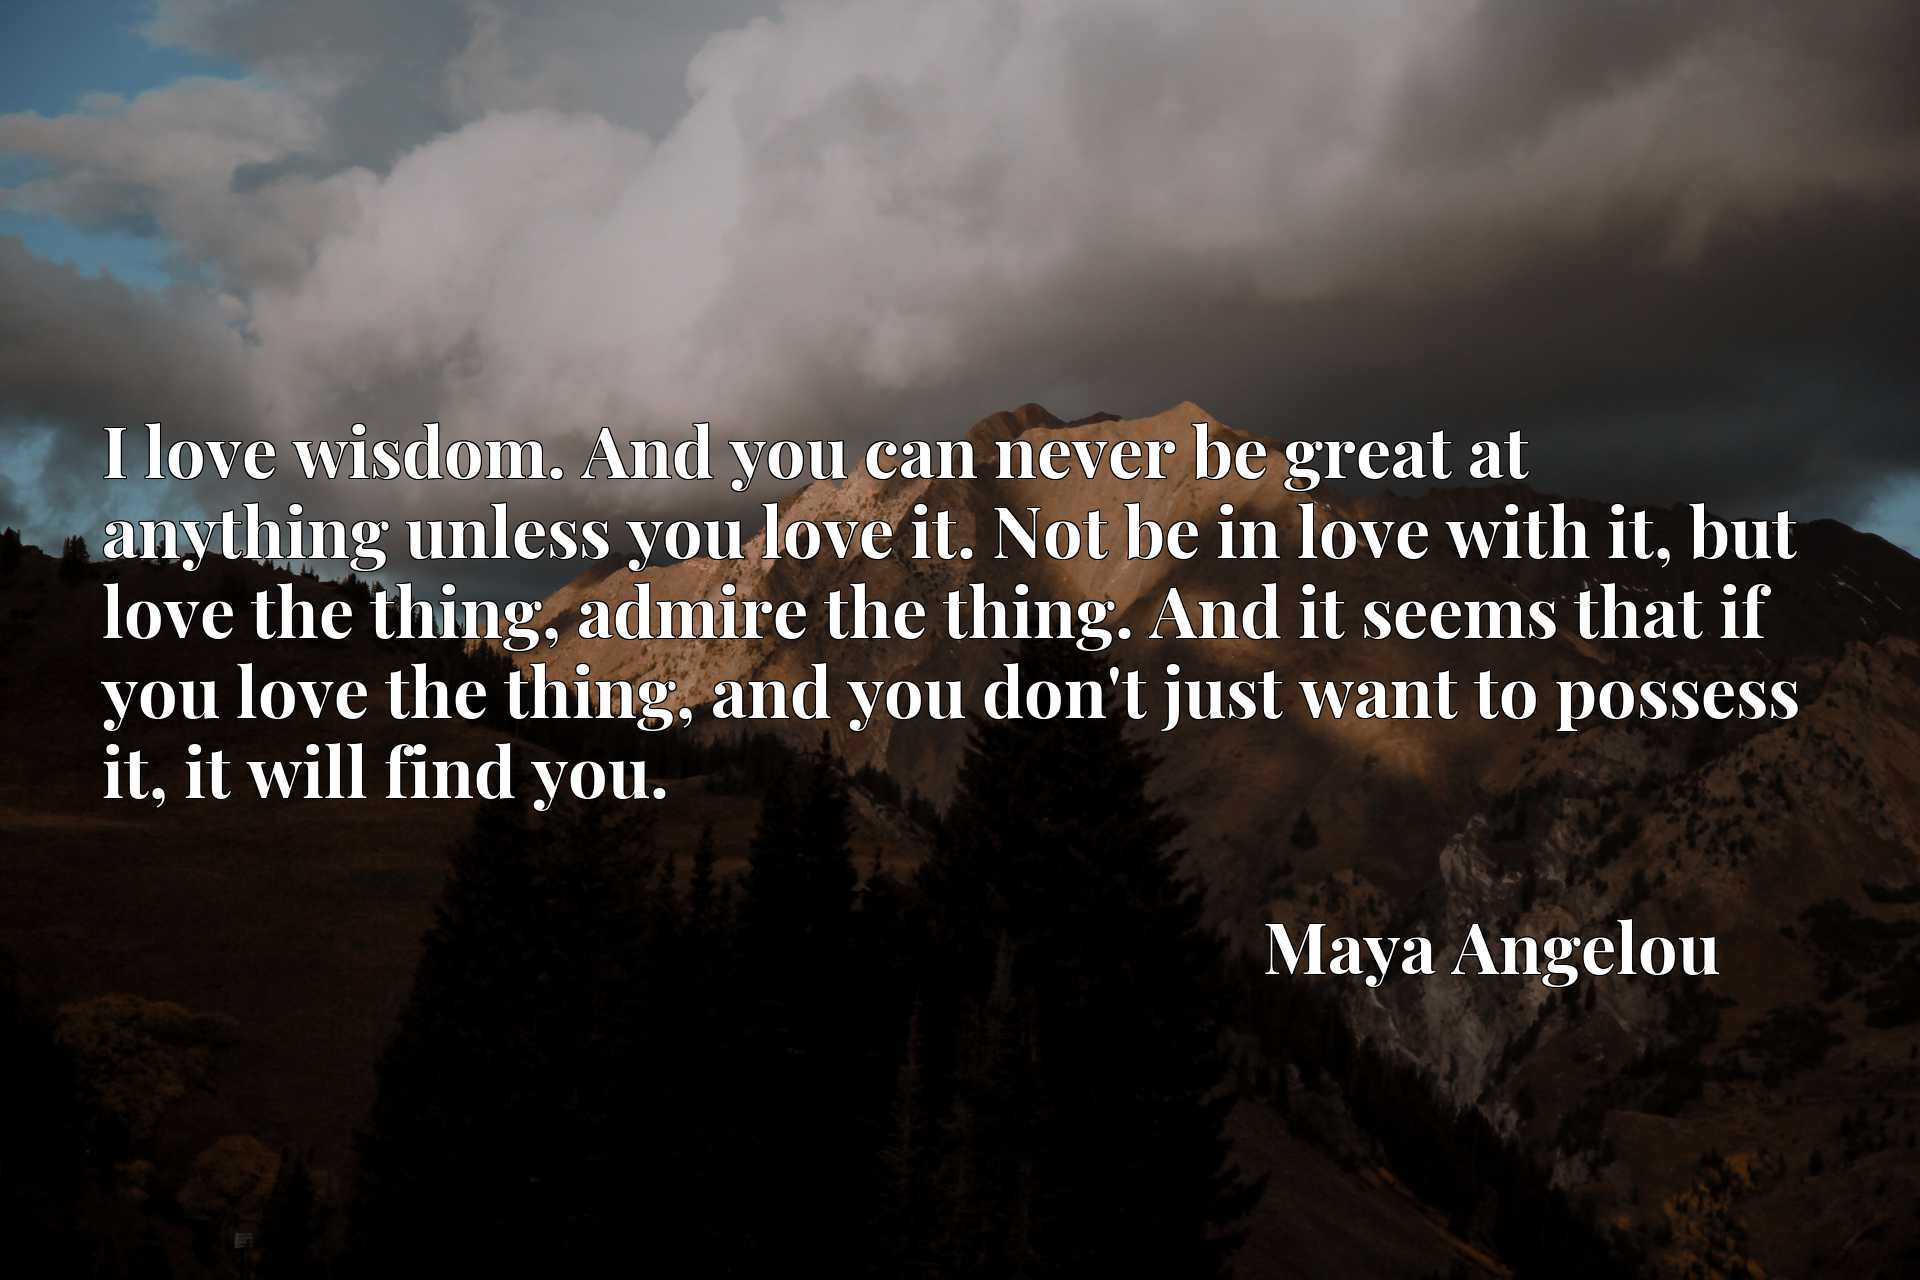 I love wisdom. And you can never be great at anything unless you love it. Not be in love with it, but love the thing, admire the thing. And it seems that if you love the thing, and you don't just want to possess it, it will find you.